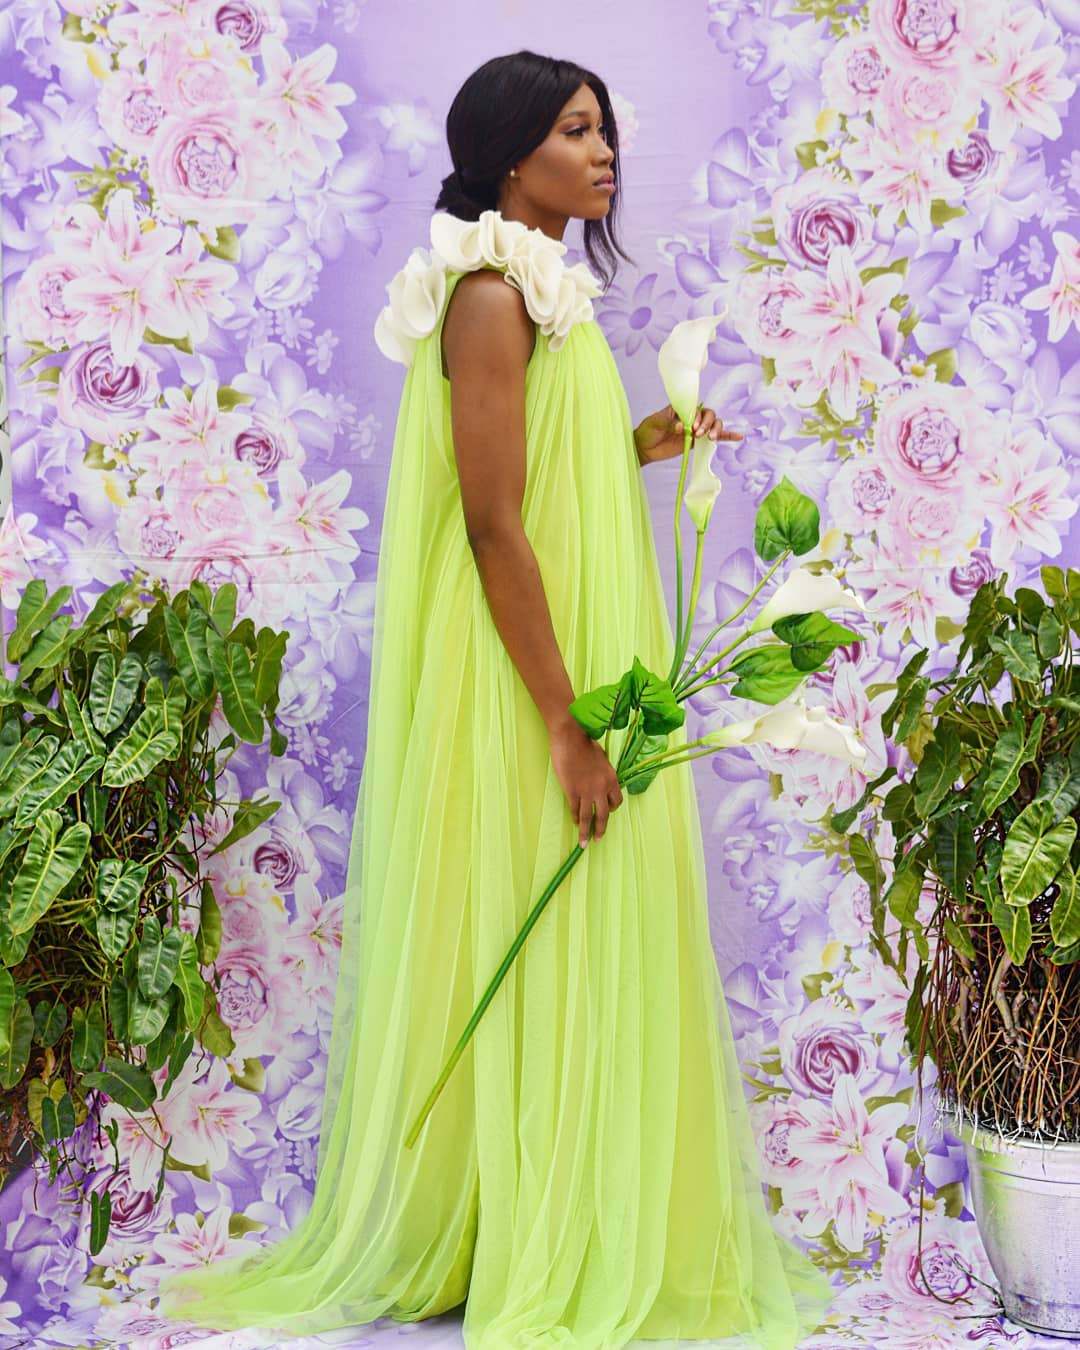 Your Closet Is Begging For These Ethereal  Pieces from M I L É M Ò S Ú N's SS19 Collection 'After Which, There Was'